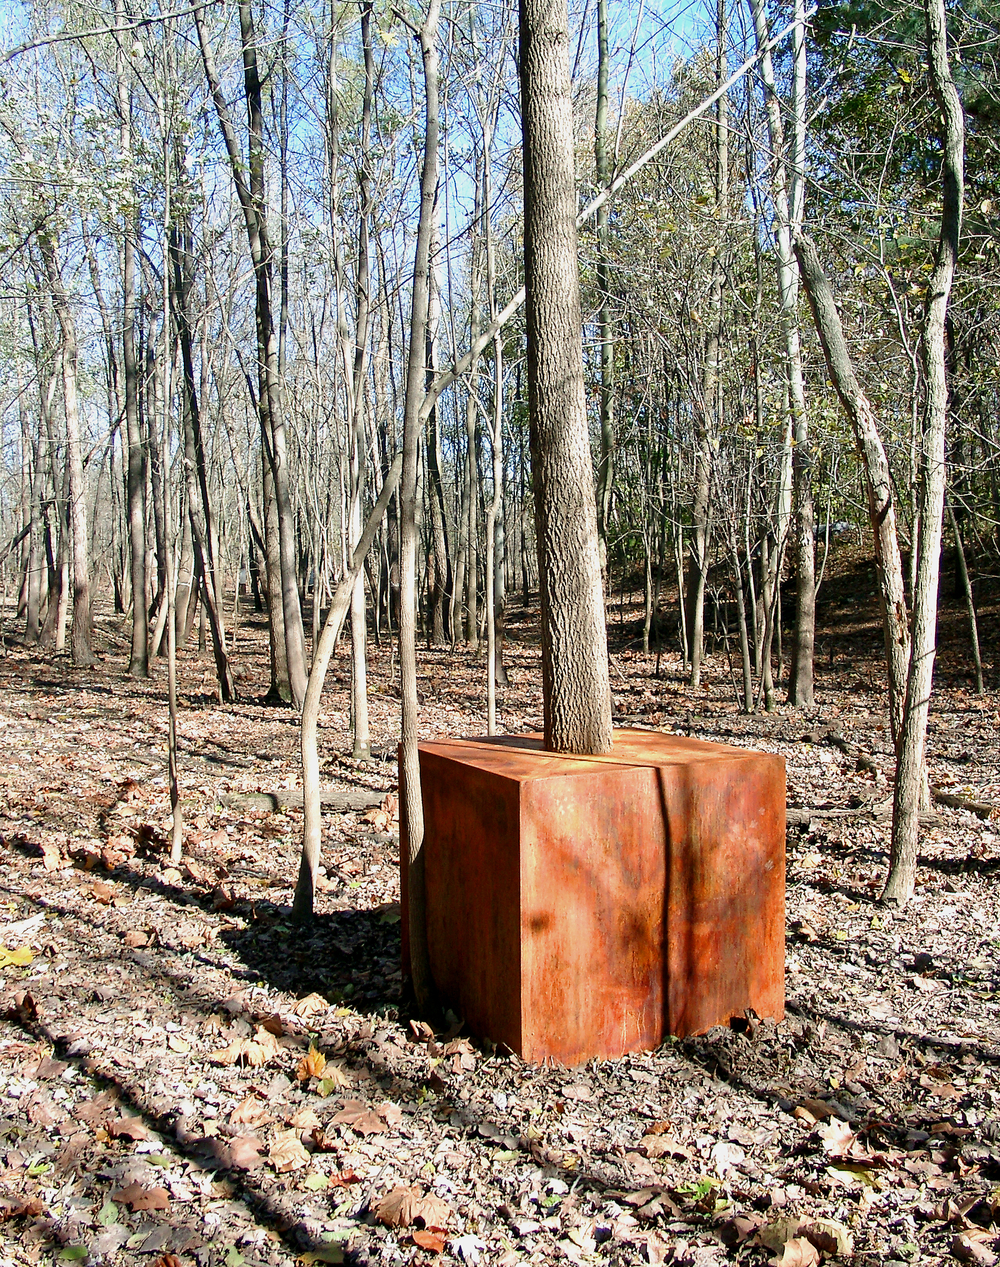 sculpture_tree_cube_snow_flood_fall_siu_carbondale_il_2003-04-27_[15 - tree cube, 2004]_12732.jpg